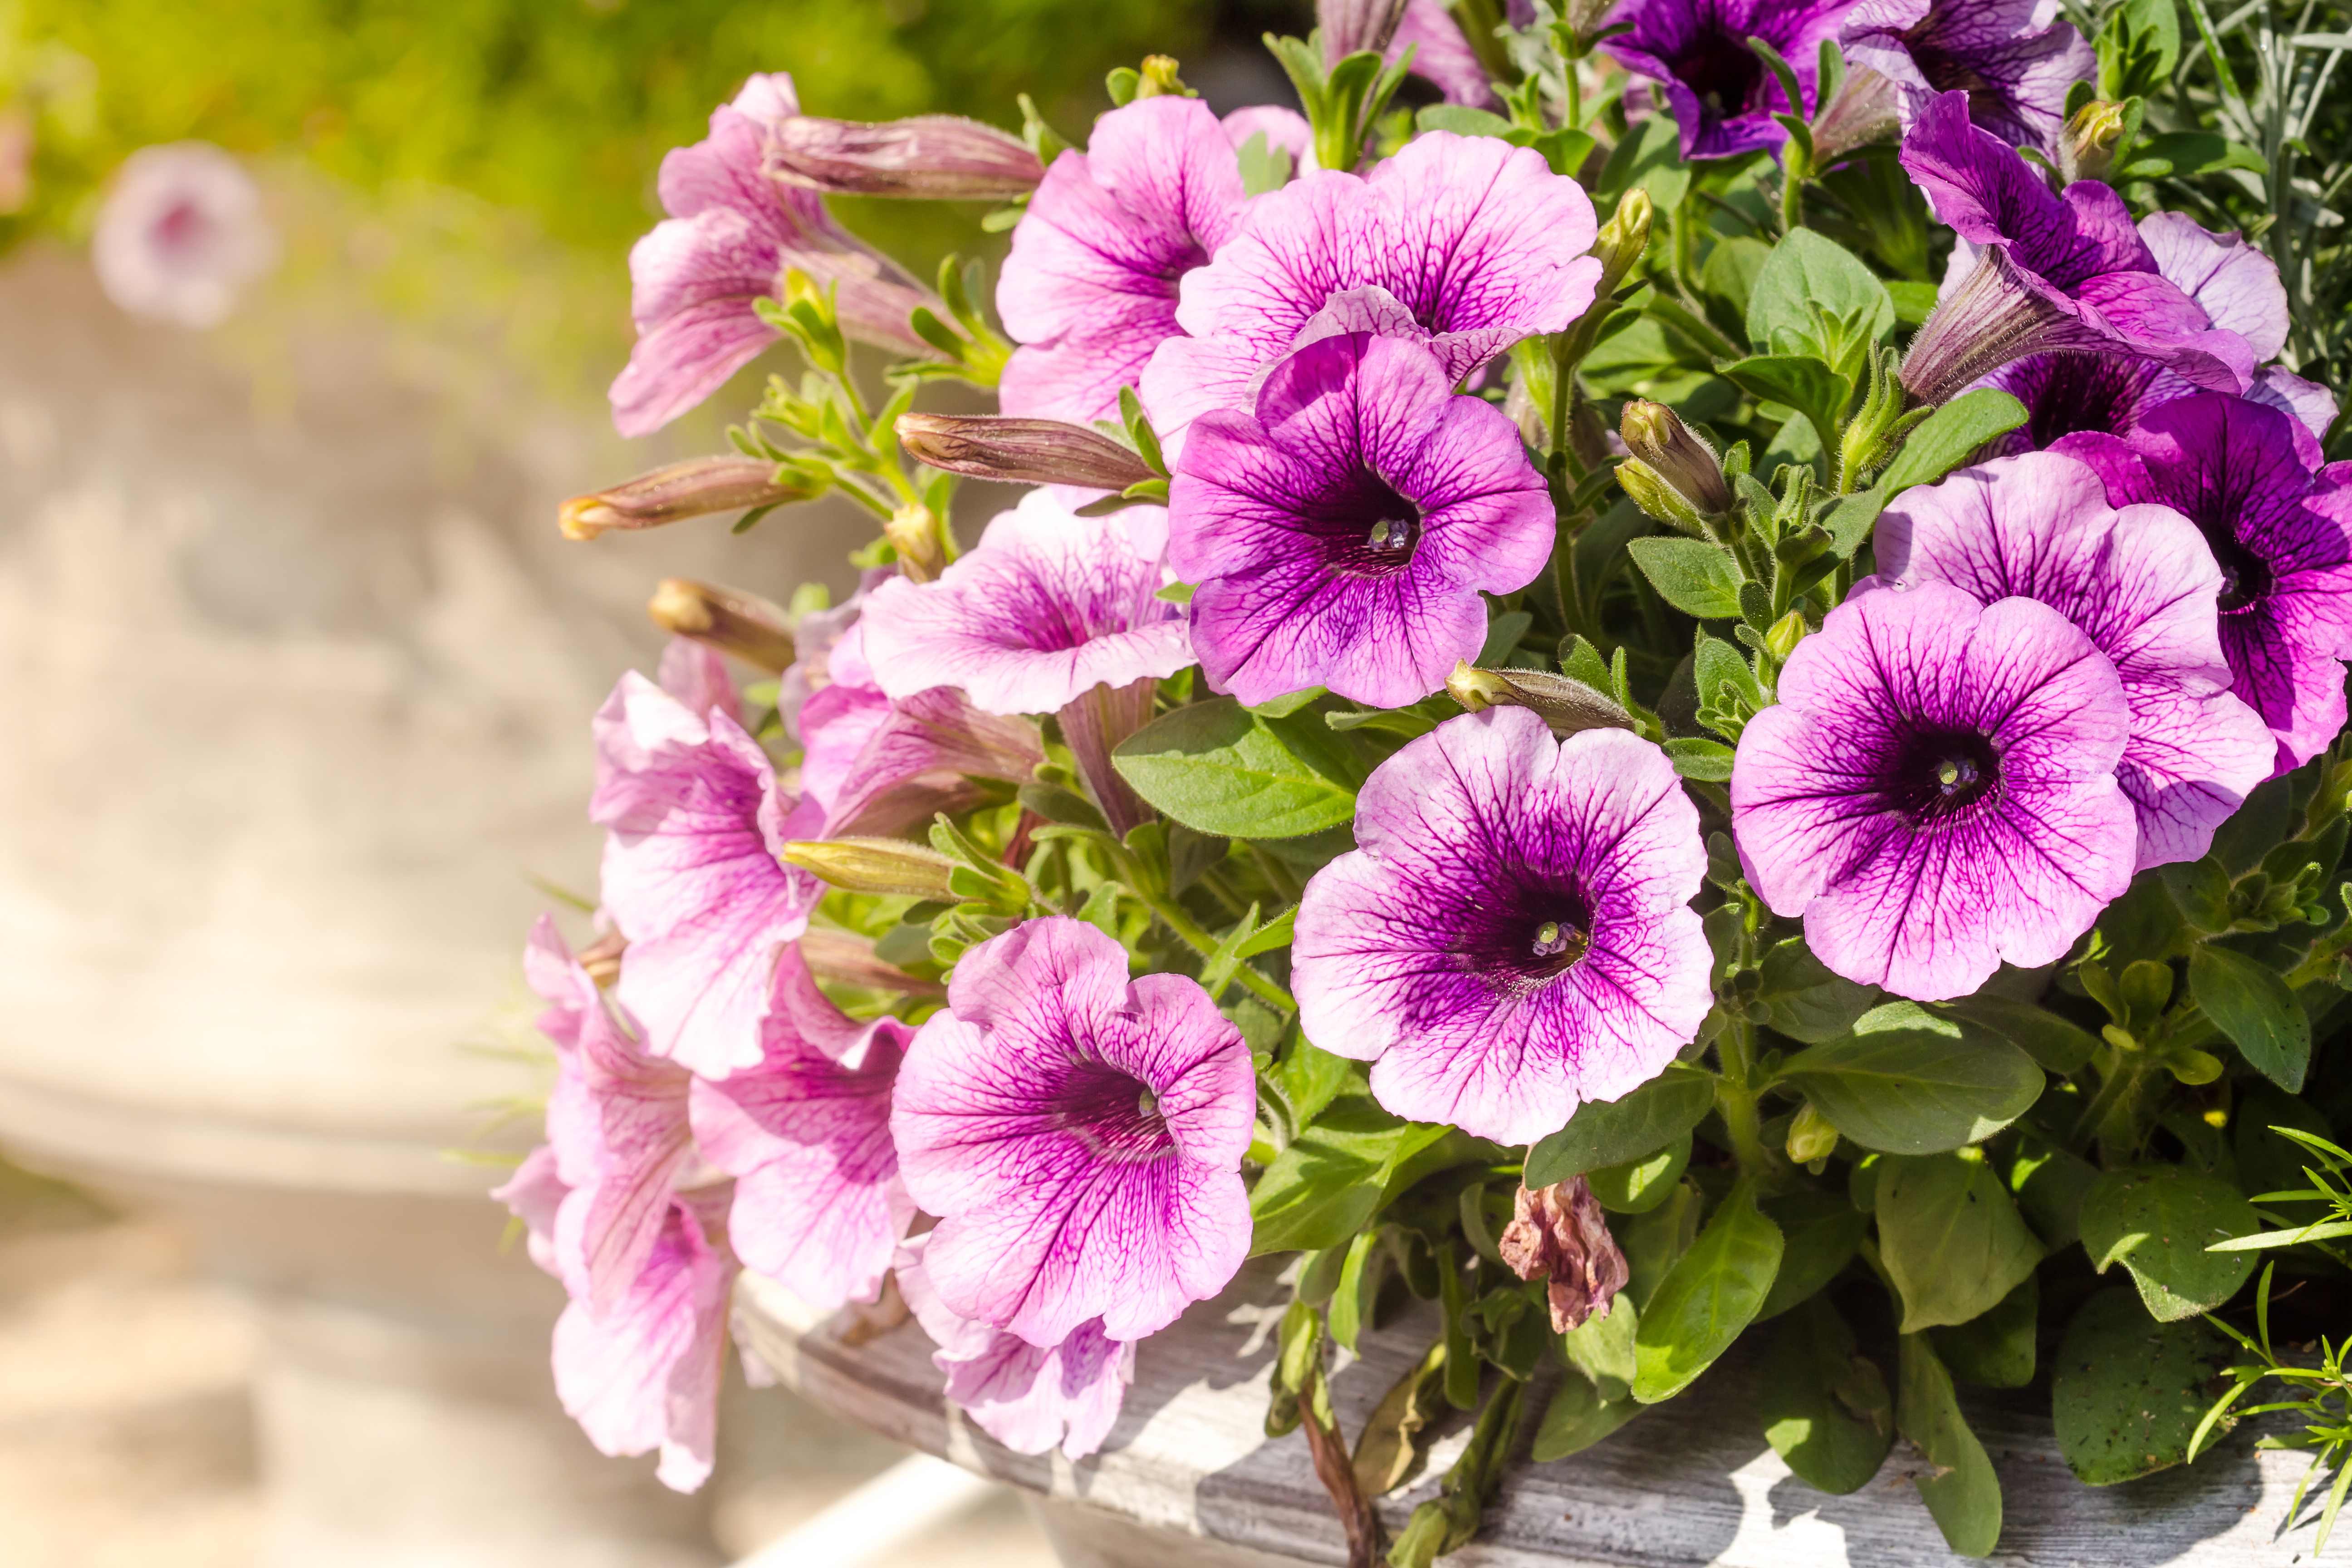 No Petunias Were Harmed In >> How Do I Treat Petunia Plants That Have Caterpillars Home Guides